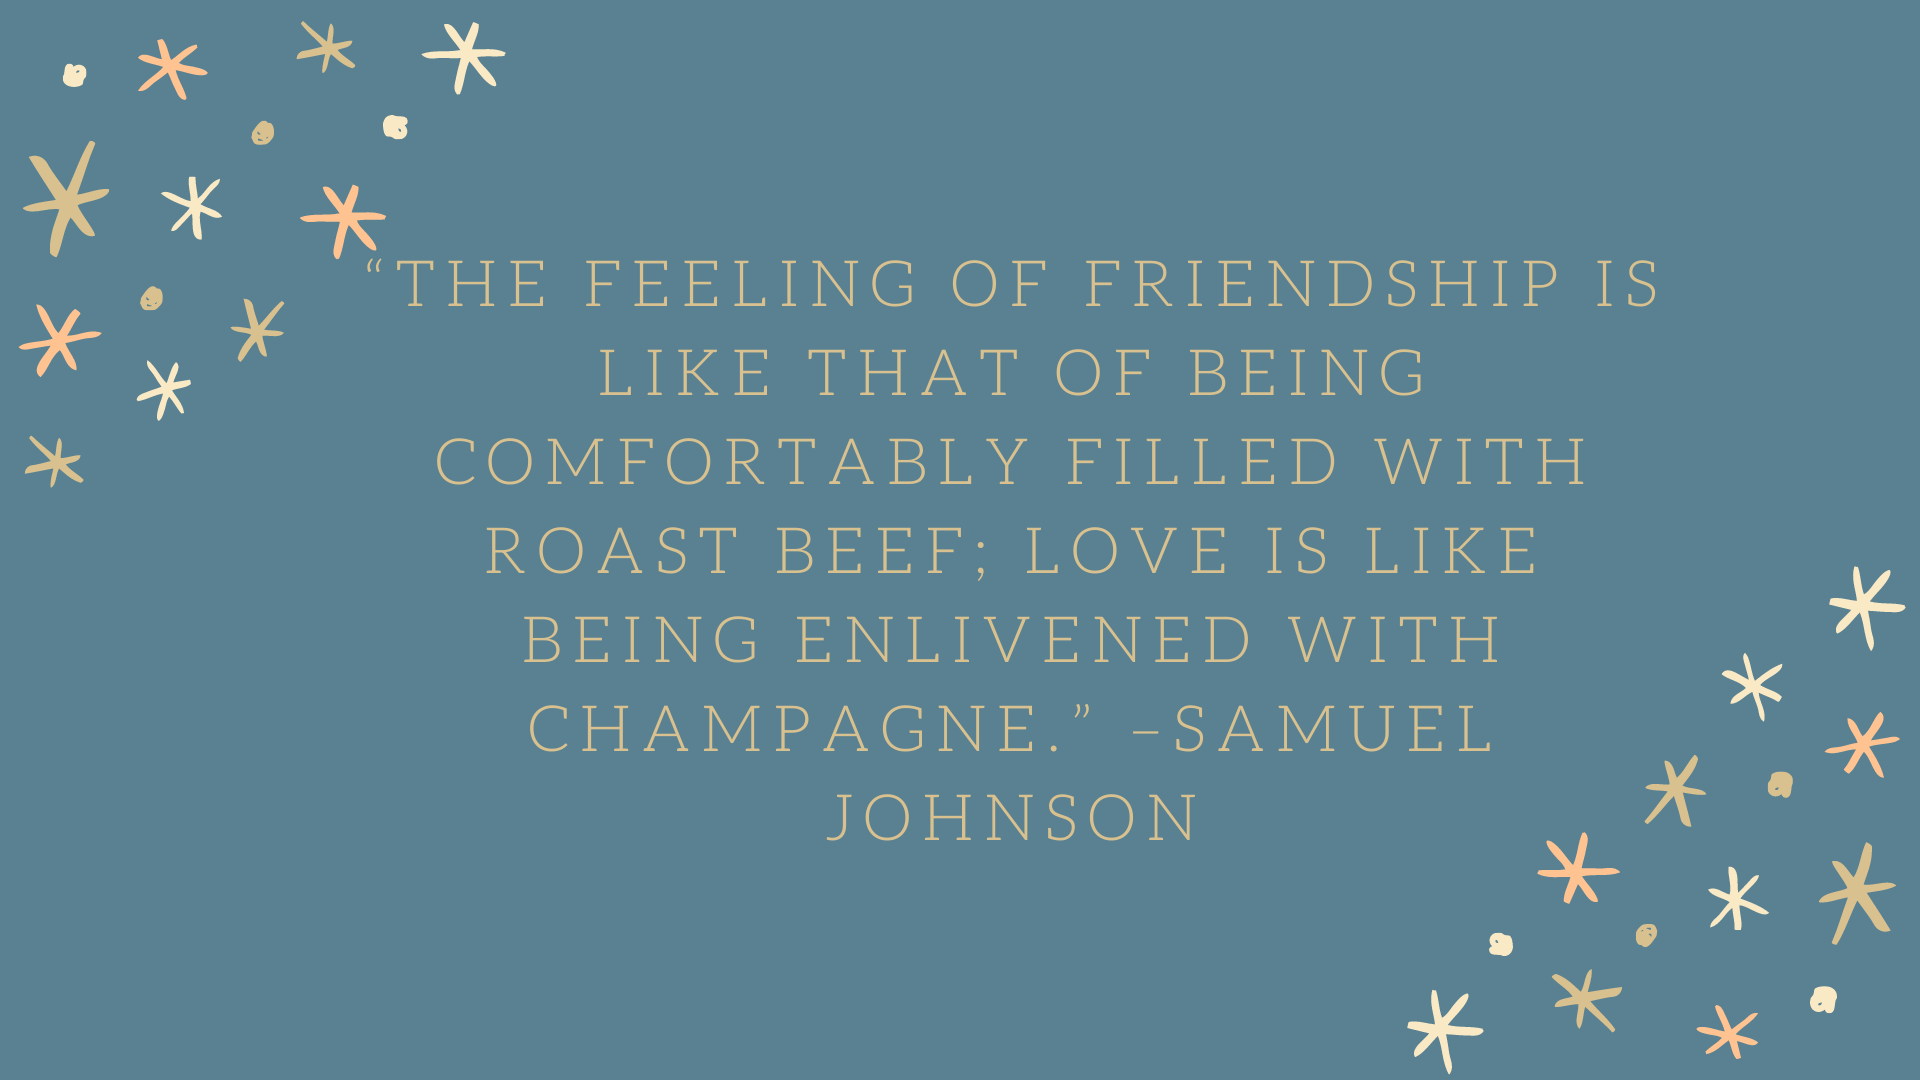 """The feeling of friendship is like that of being comfortably filled with roast beef; love is like being enlivened with champagne."" –Samuel Johnson"